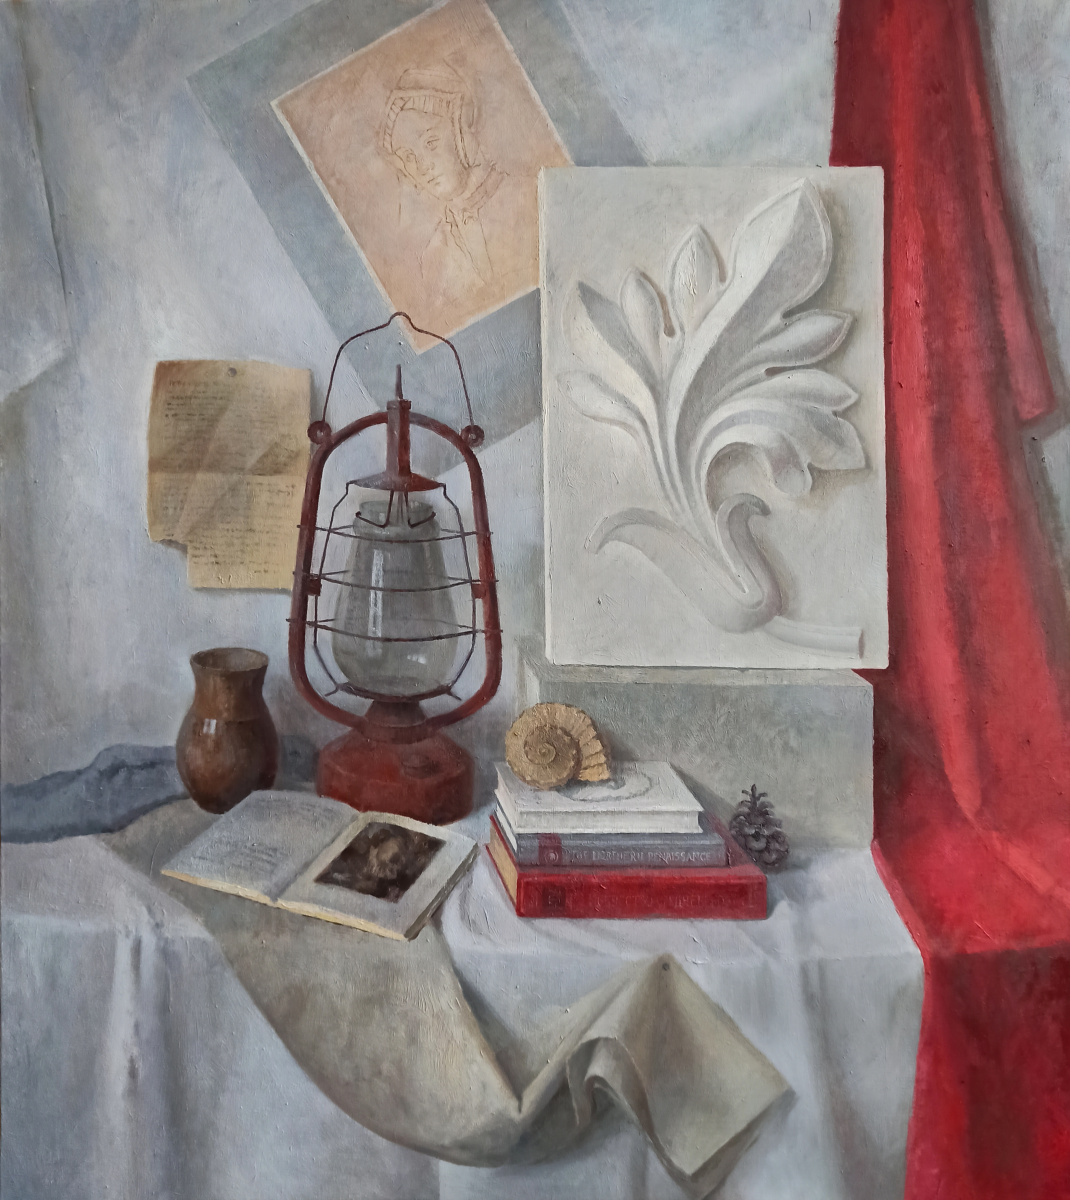 Ольга Акрилова. Still life with plaster rosette